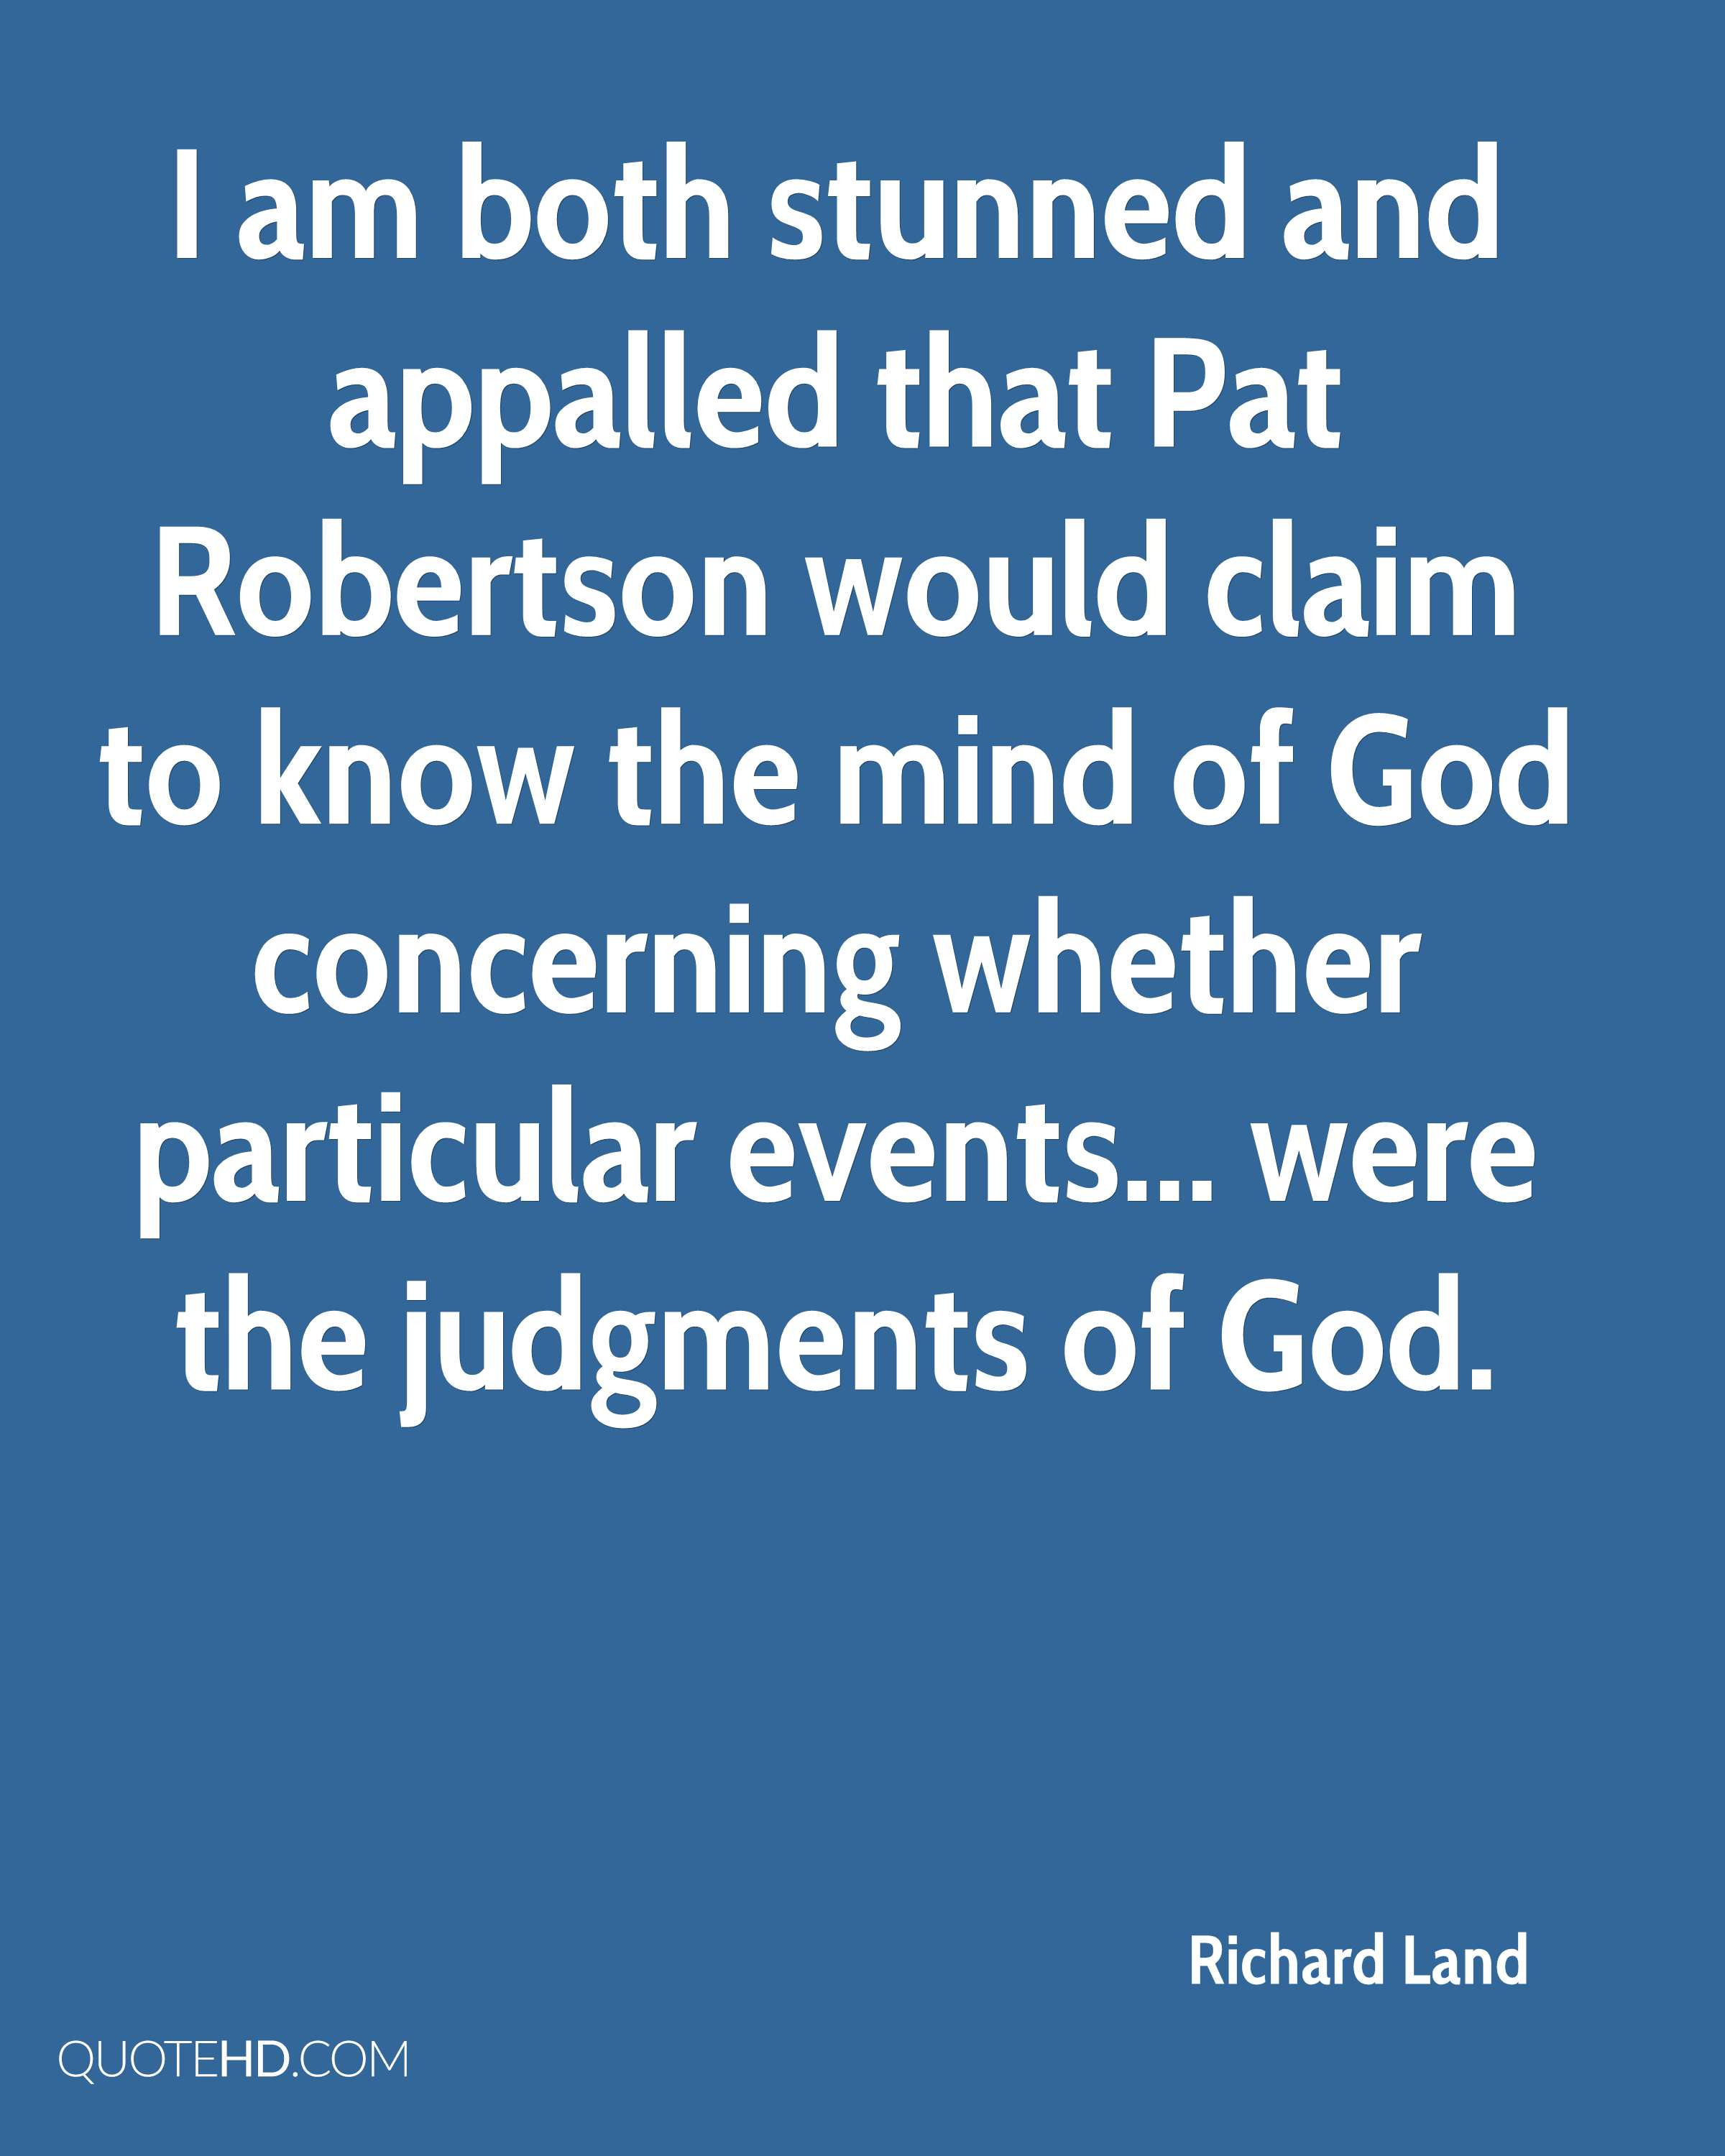 I am both stunned and appalled that Pat Robertson would claim to know the mind of God concerning whether particular events... were the judgments of God.